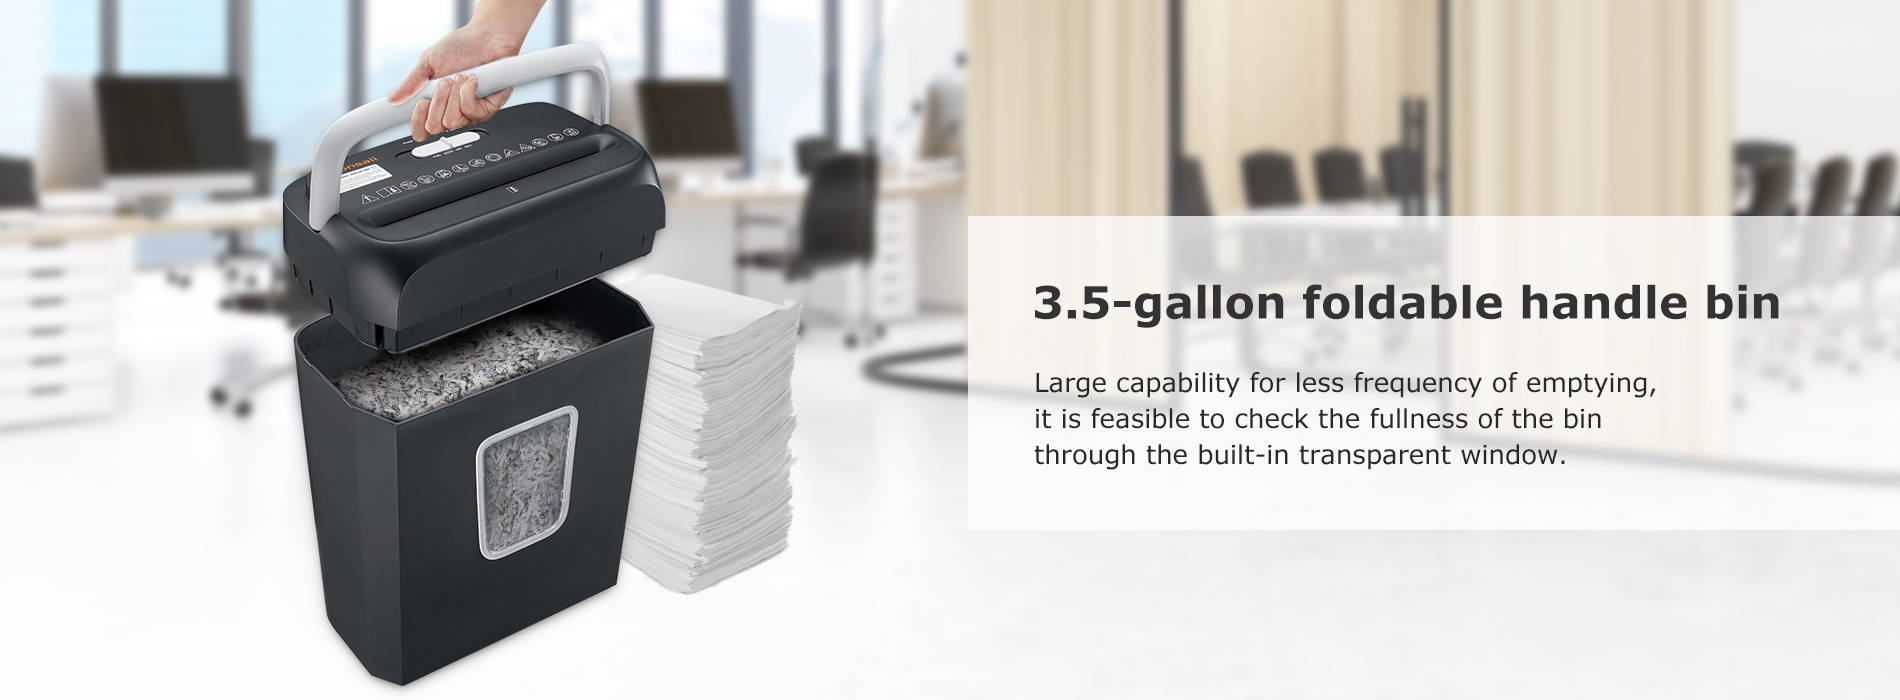 3.5-gallon foldable handle bin Large capability for less frequency of emptying, it is feasible to check the fullness of the bin through the built-in transparent window.